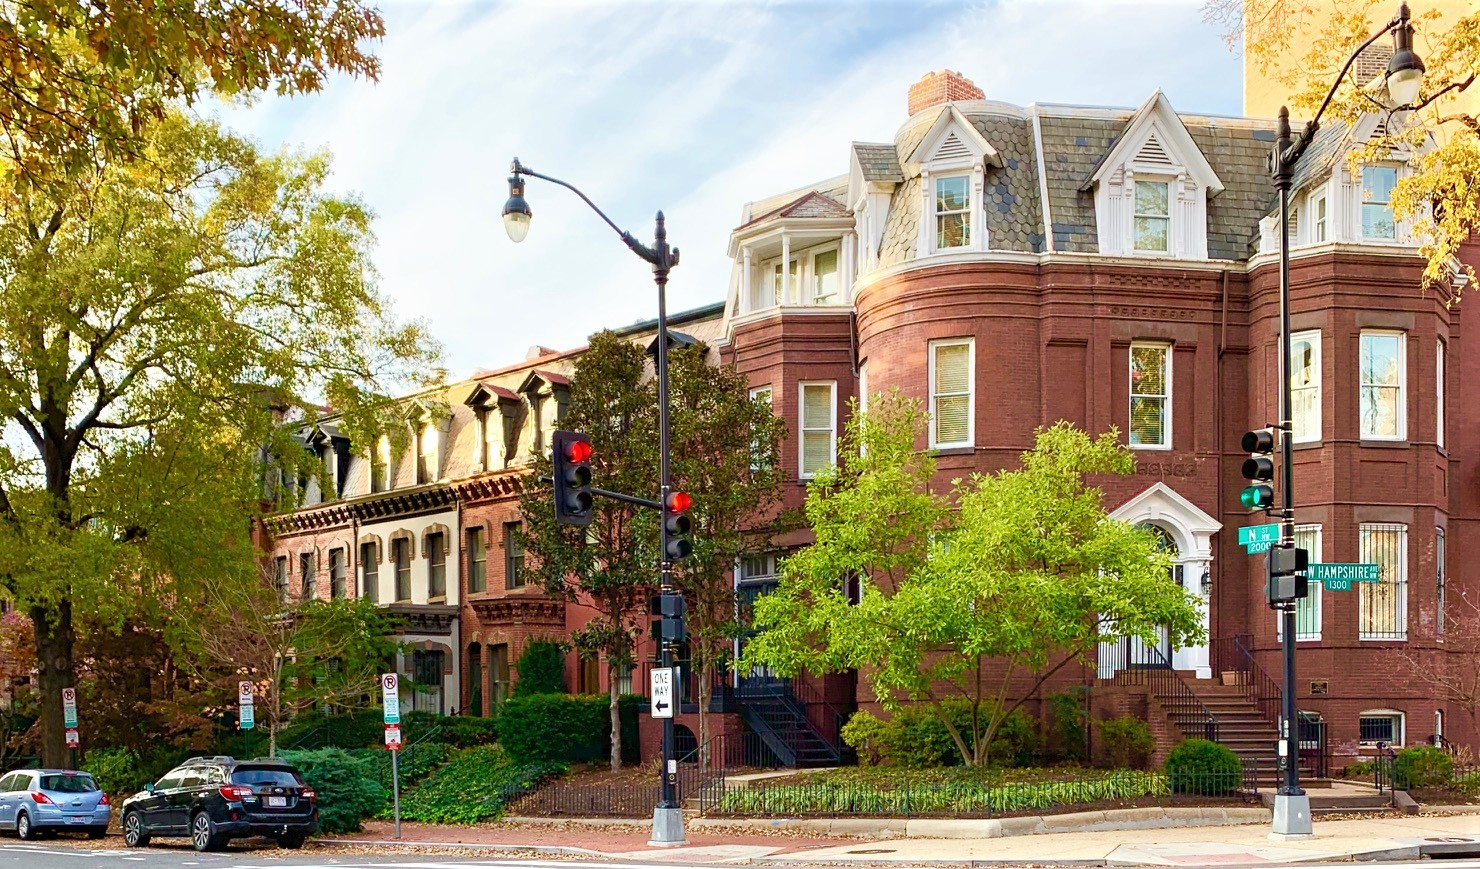 Washington, DC Townhomes For Sale. N Street in Dupont Circle. Artyom Shmatko Luxury Real Estate Agent